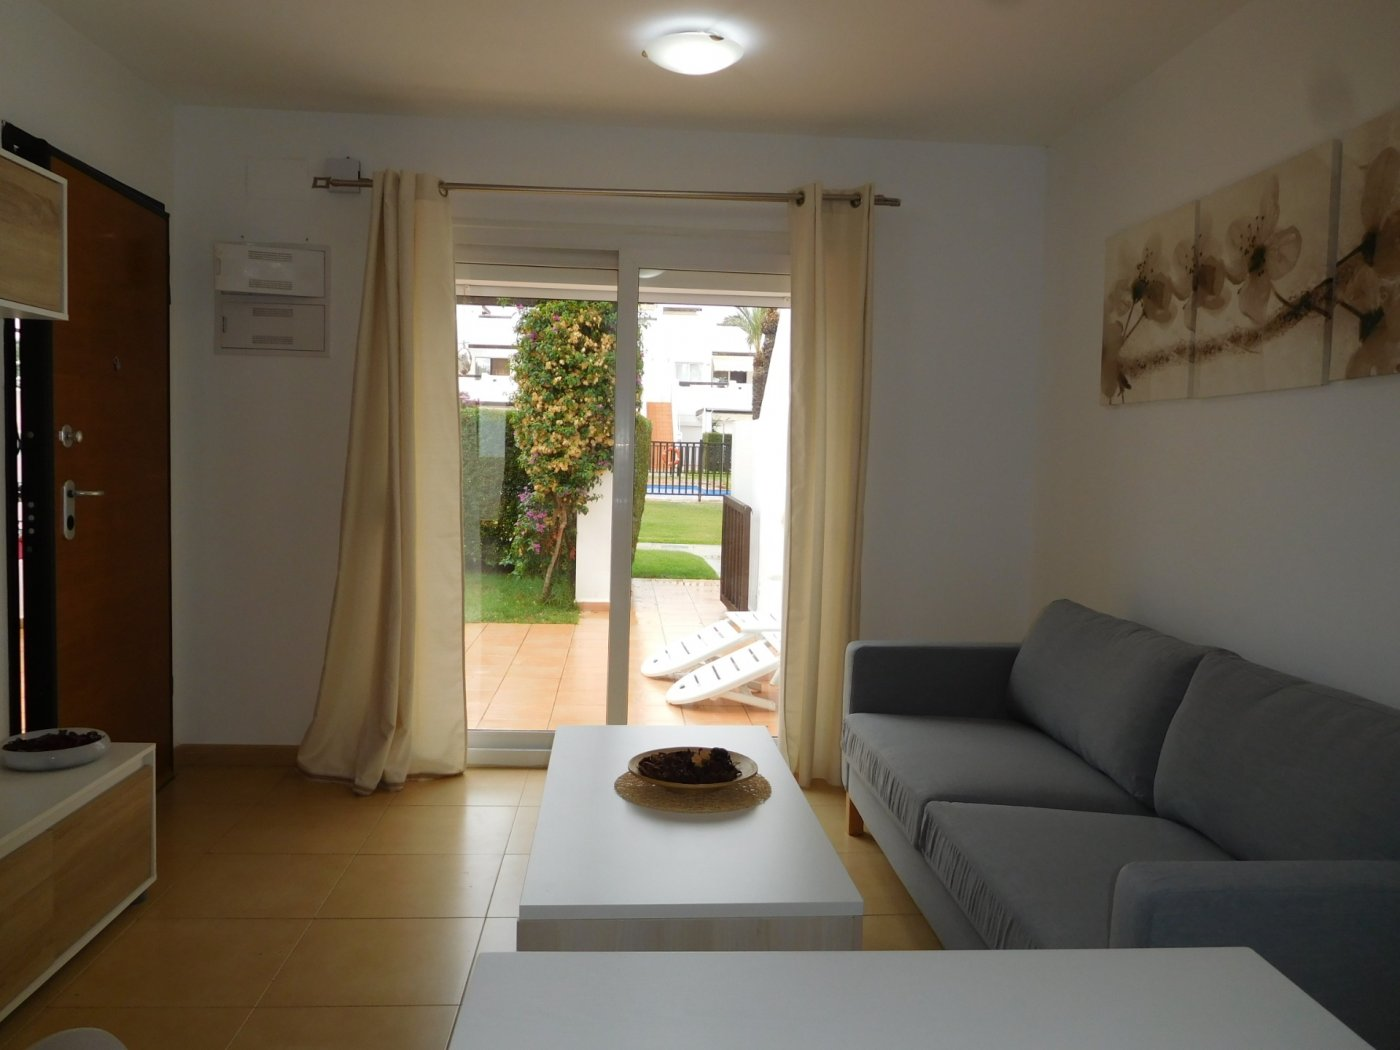 Gallery Image 5 of Flat For rent in Condado De Alhama, Alhama De Murcia With Pool